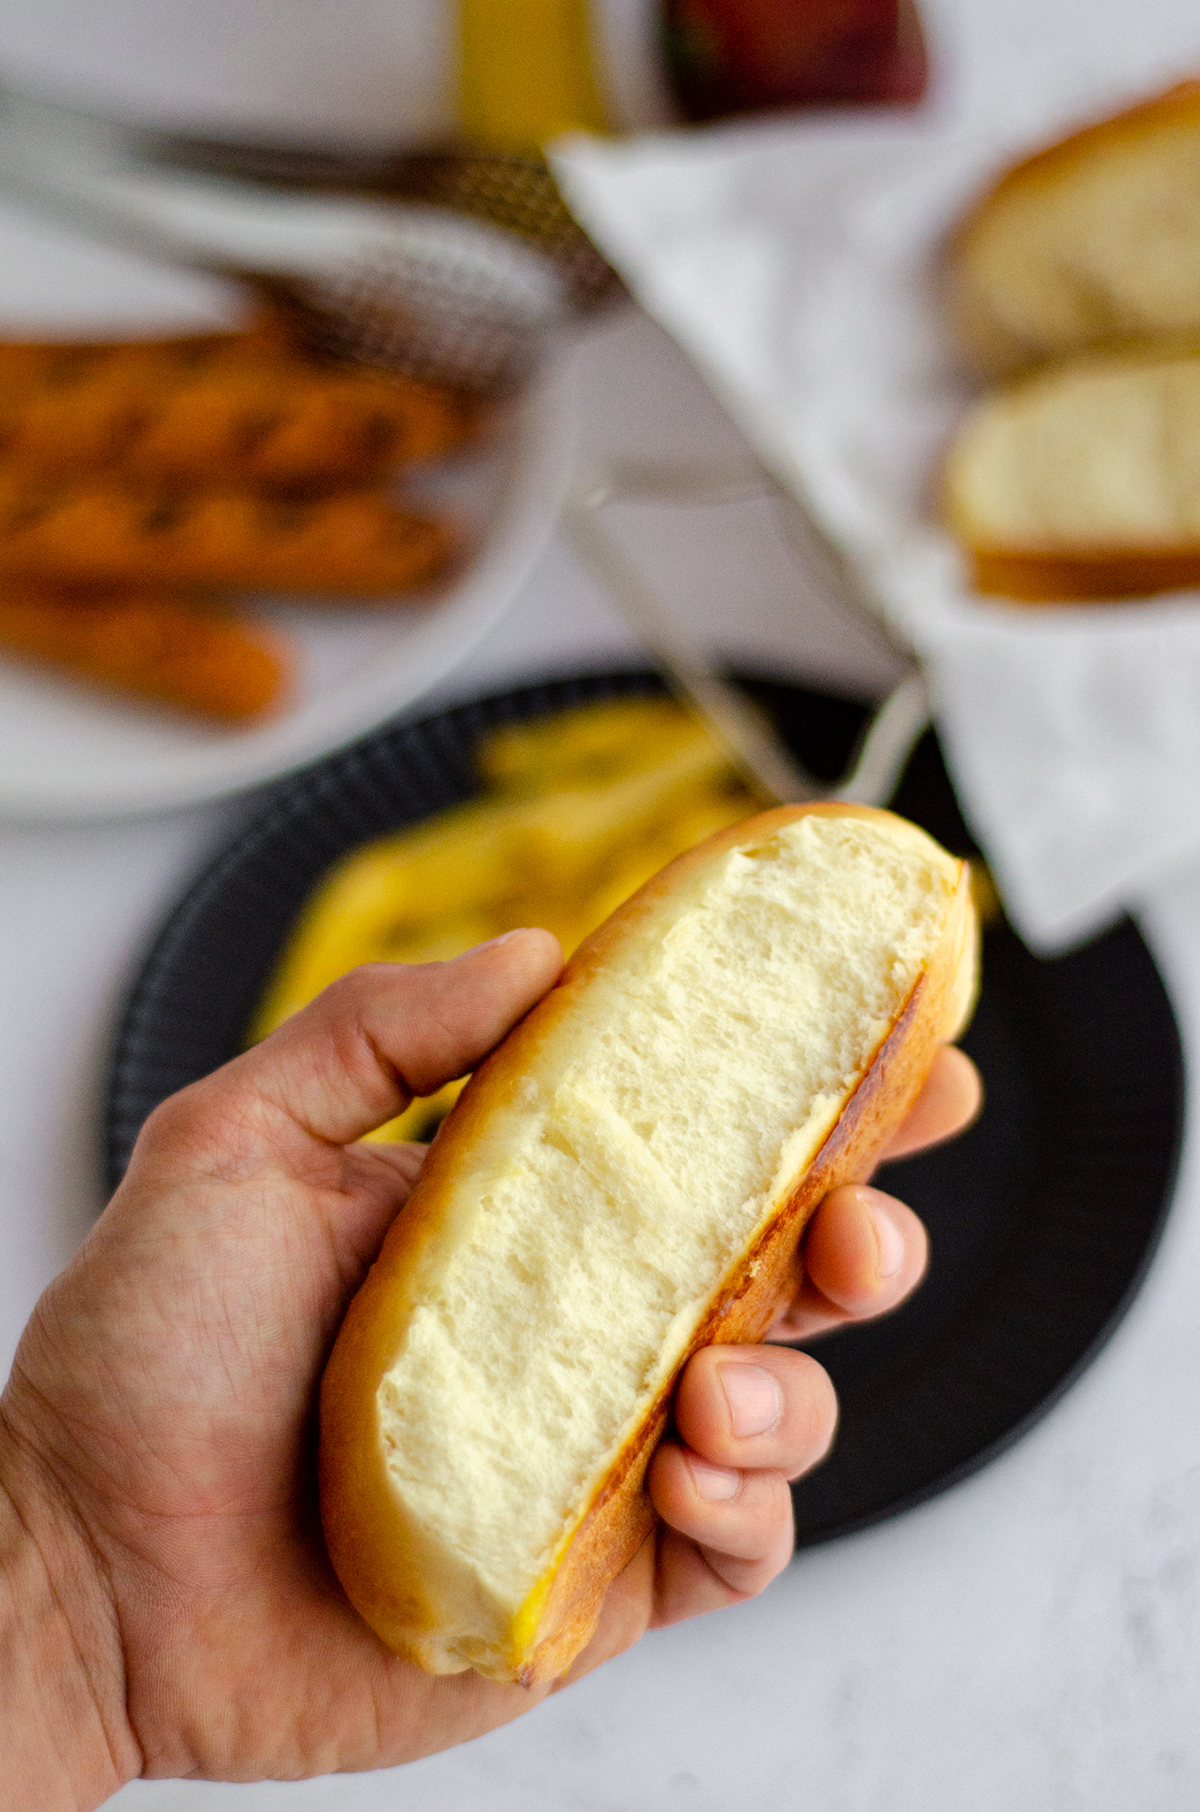 a hand holding a homemade hot dog bun